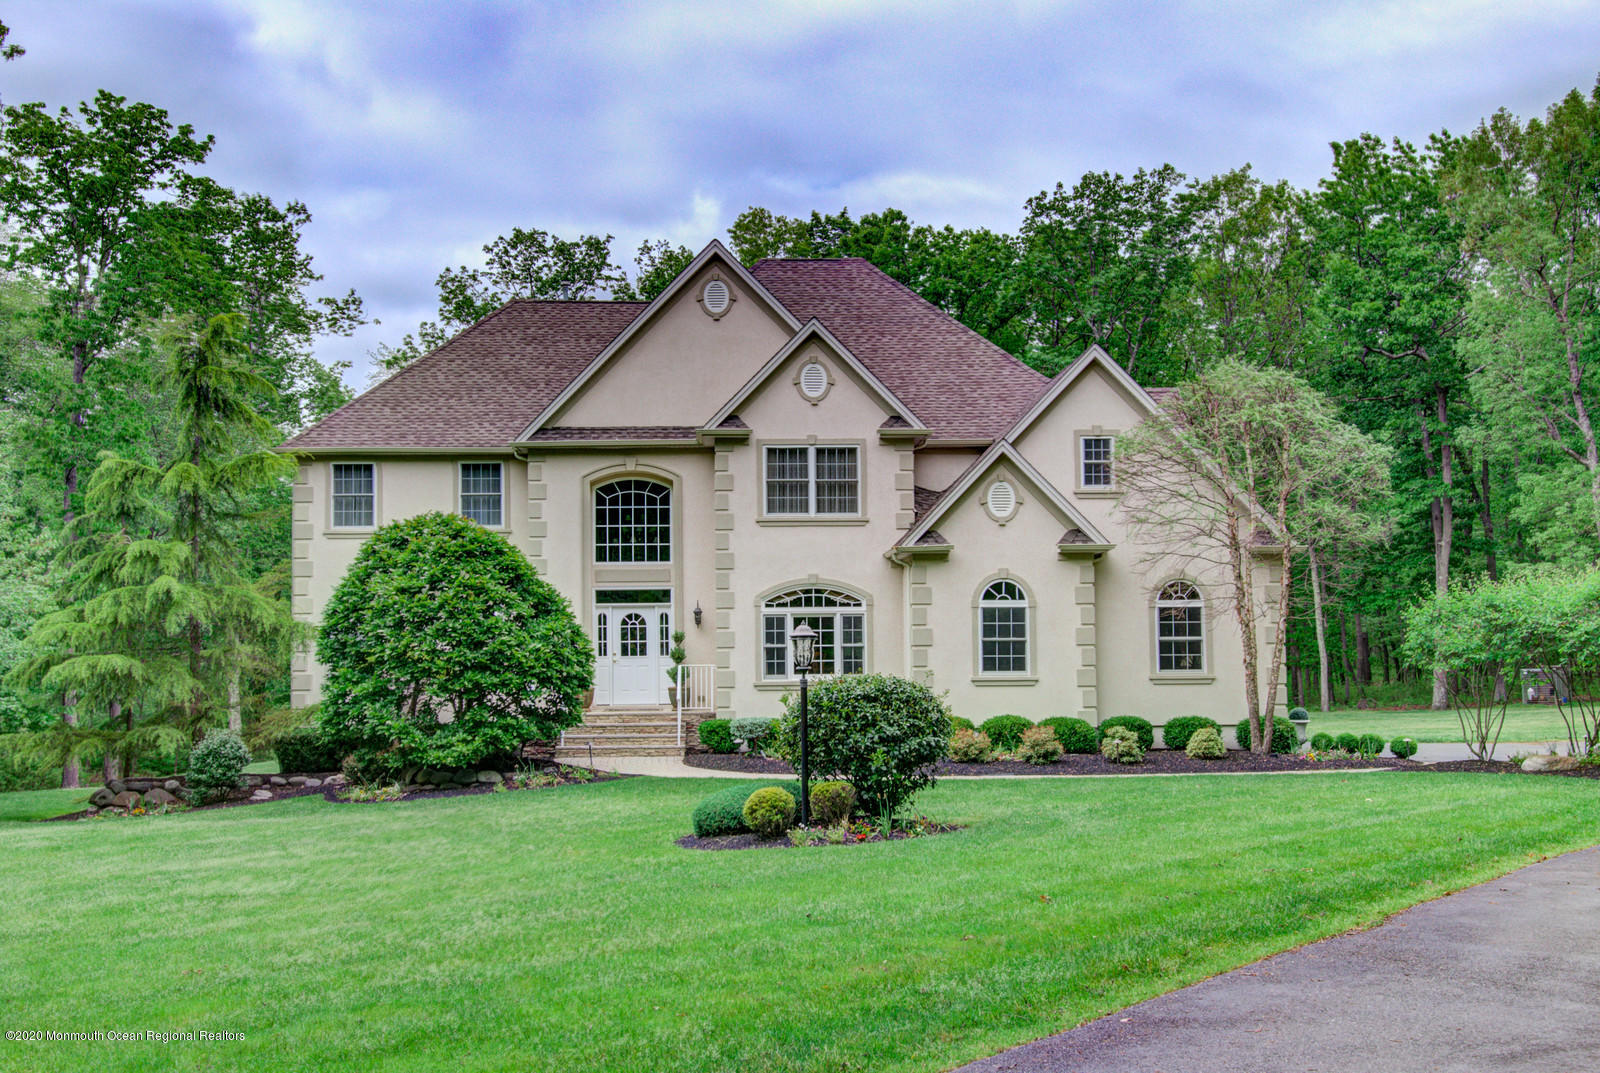 52  Carrs Tavern Road,  Millstone, NJ